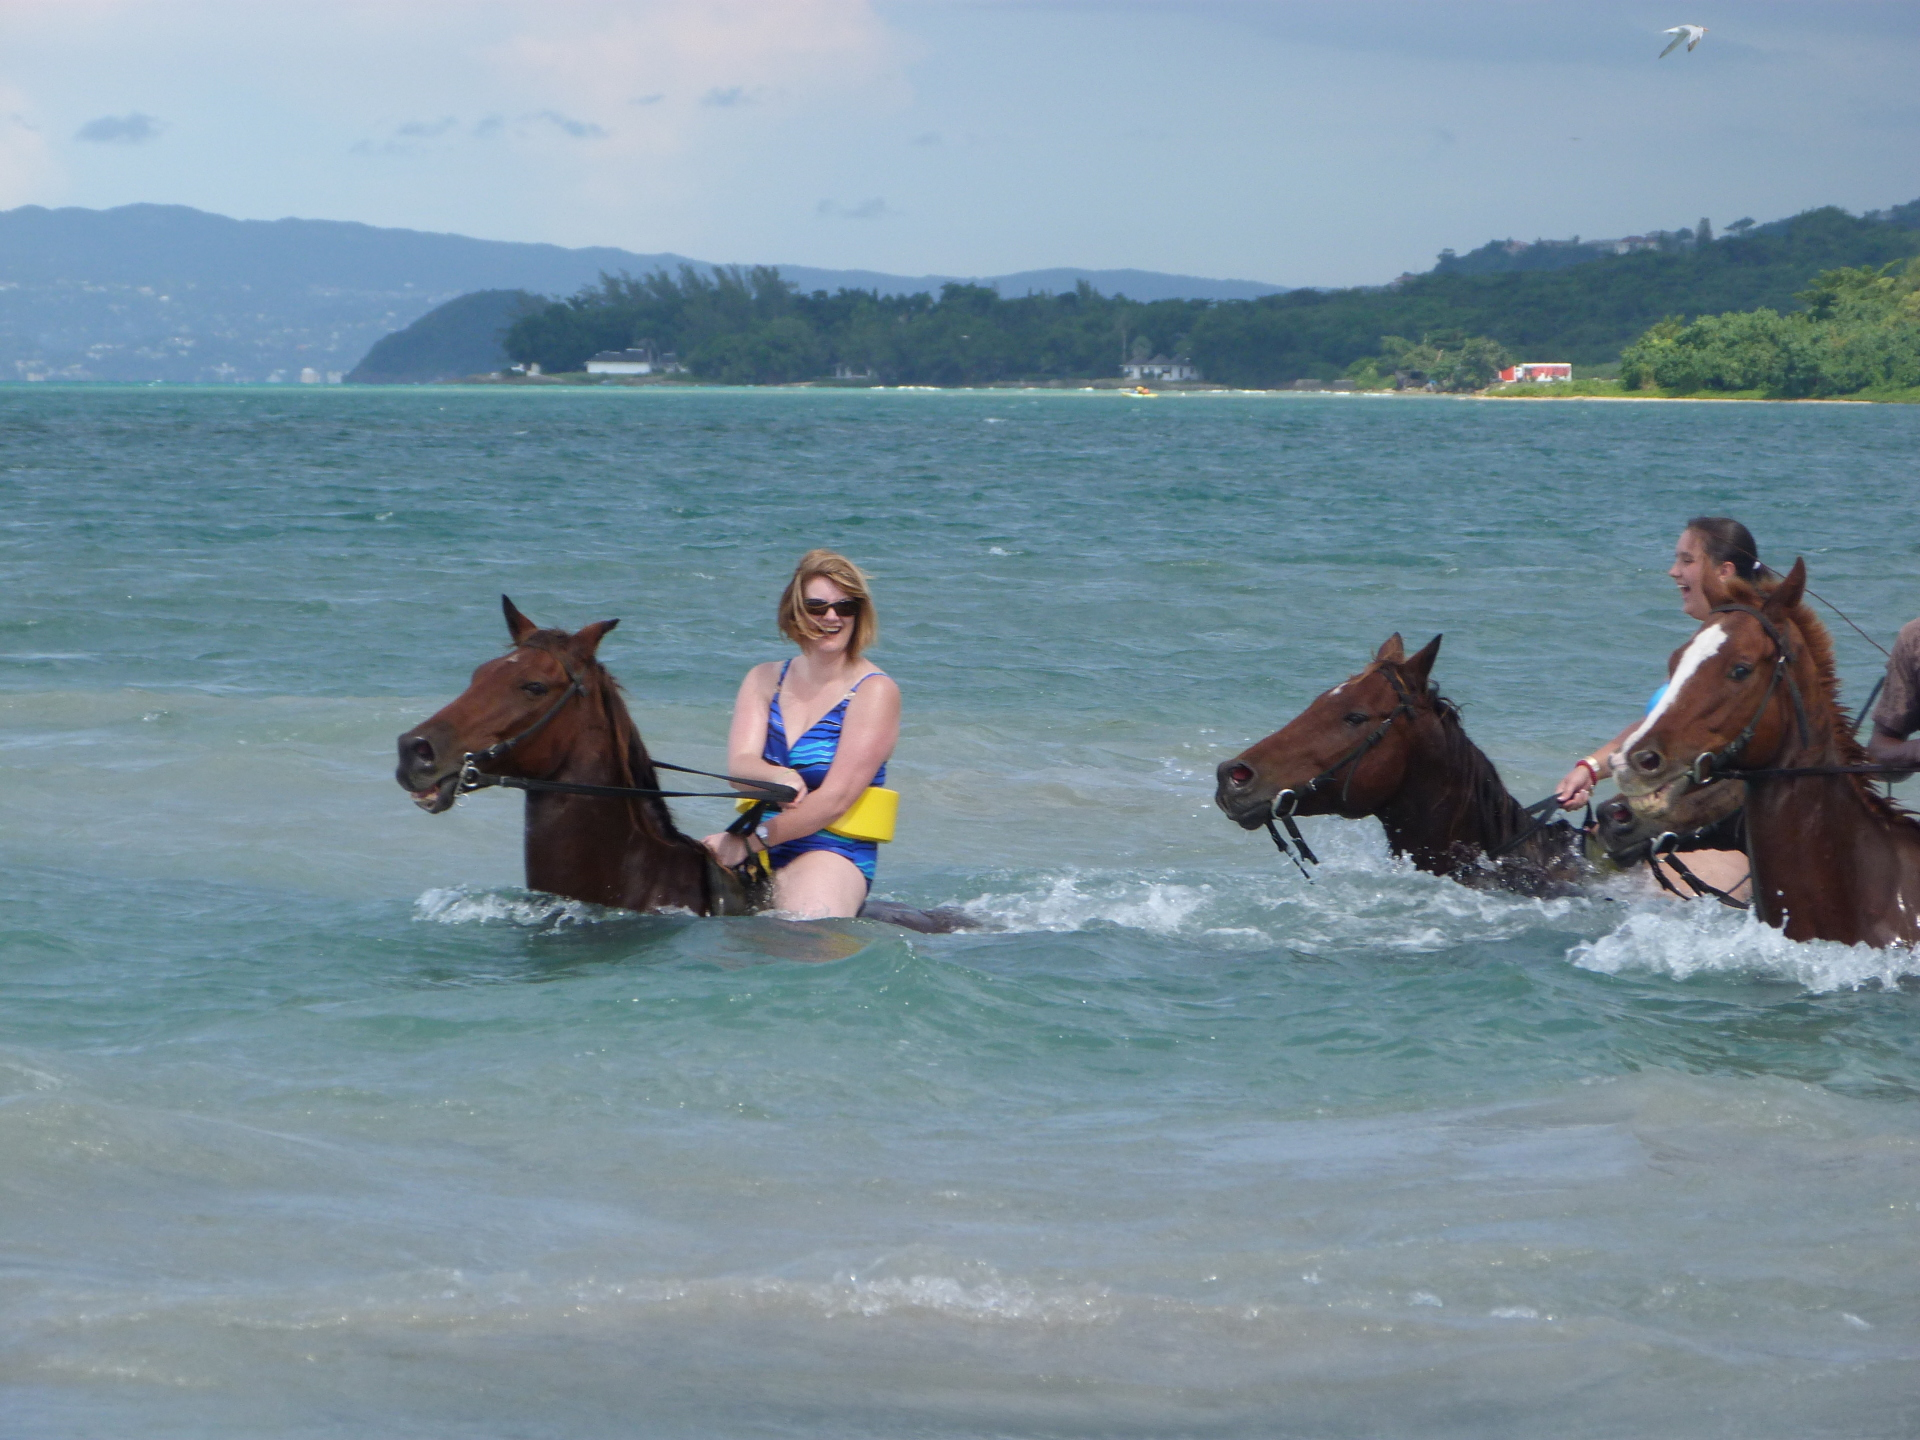 Melina horse riding at the beach